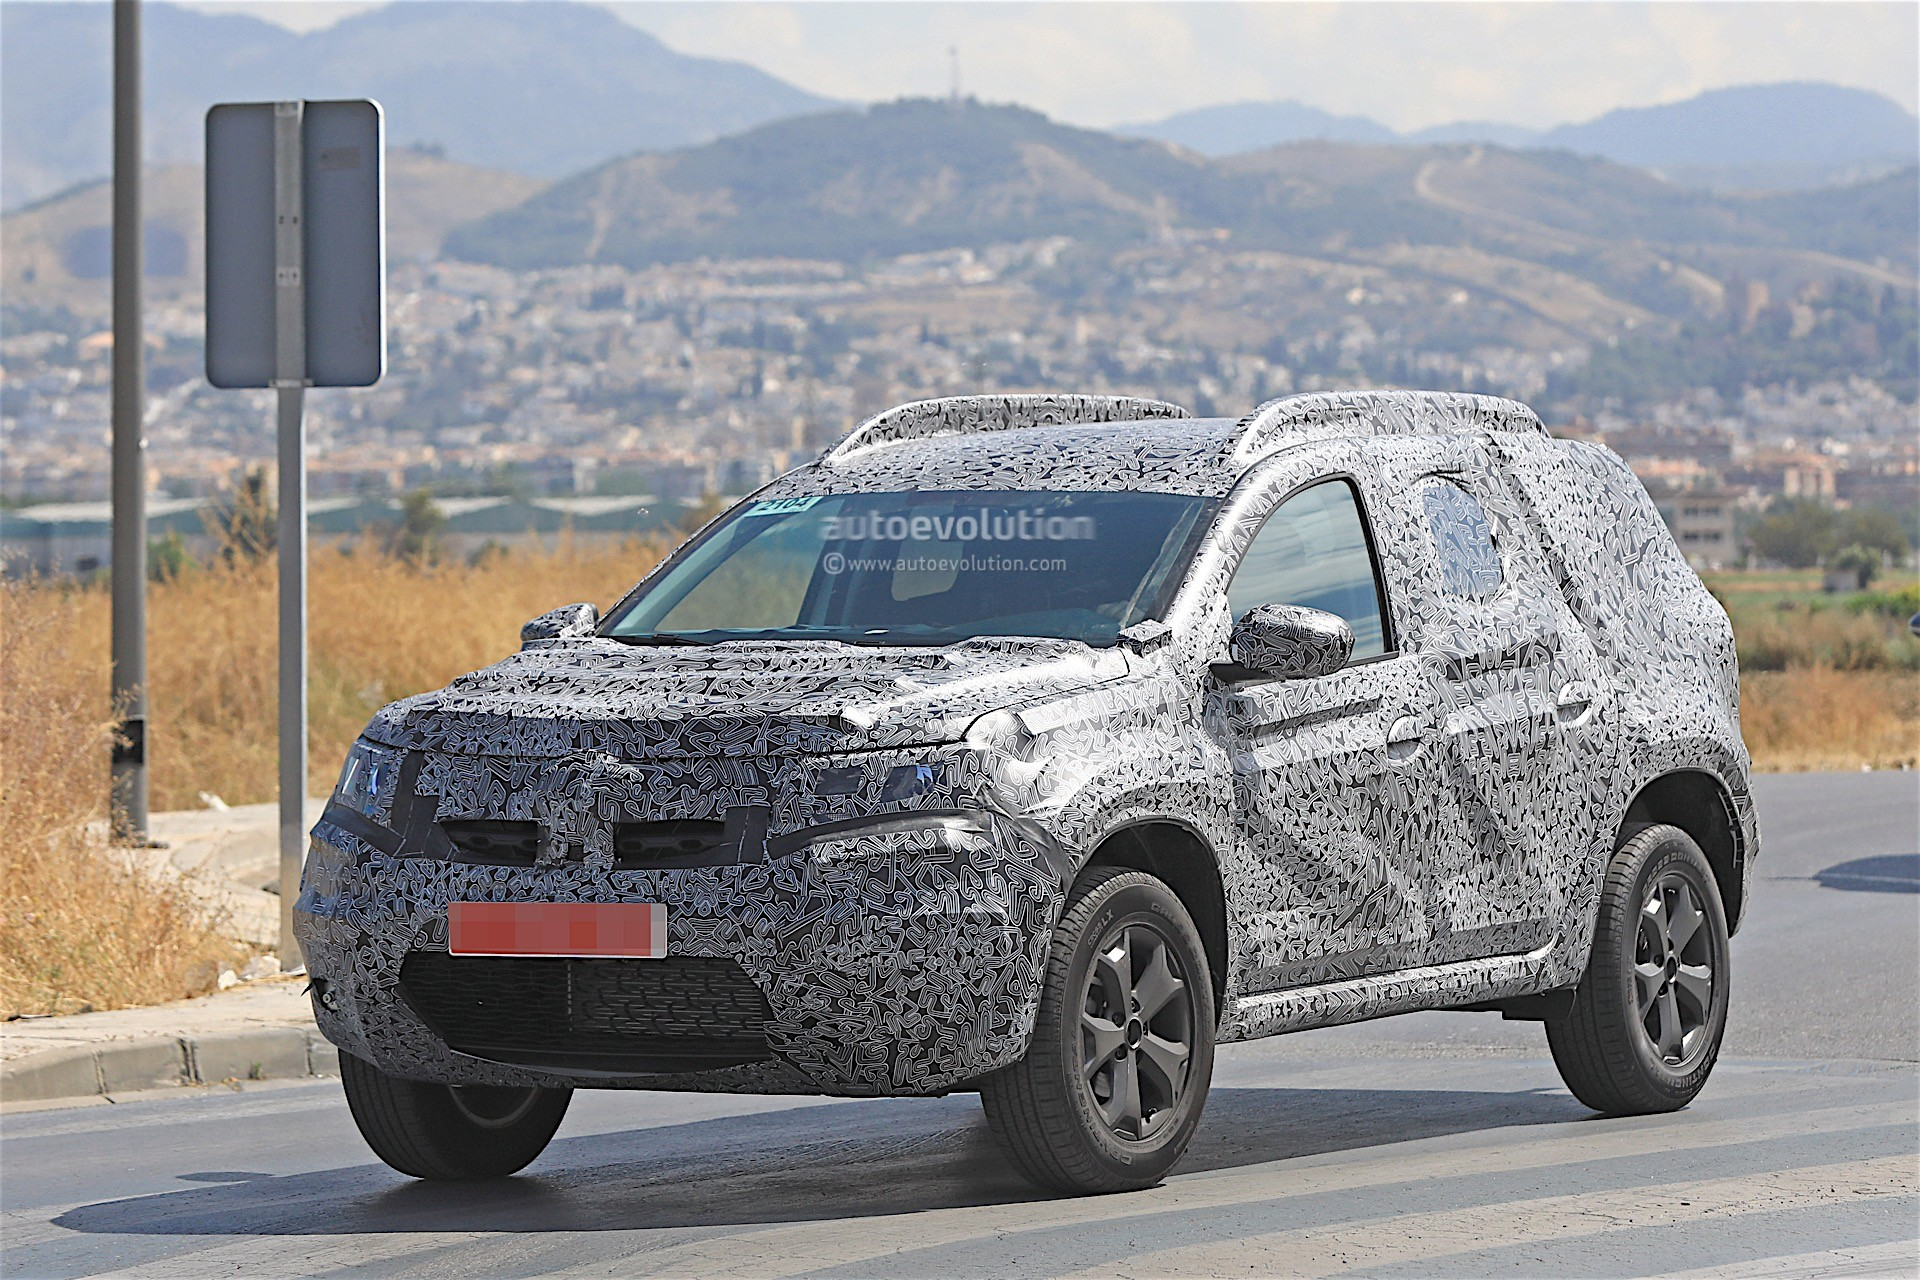 2019 Dacia Duster Spied For the First Time, Prototype ...